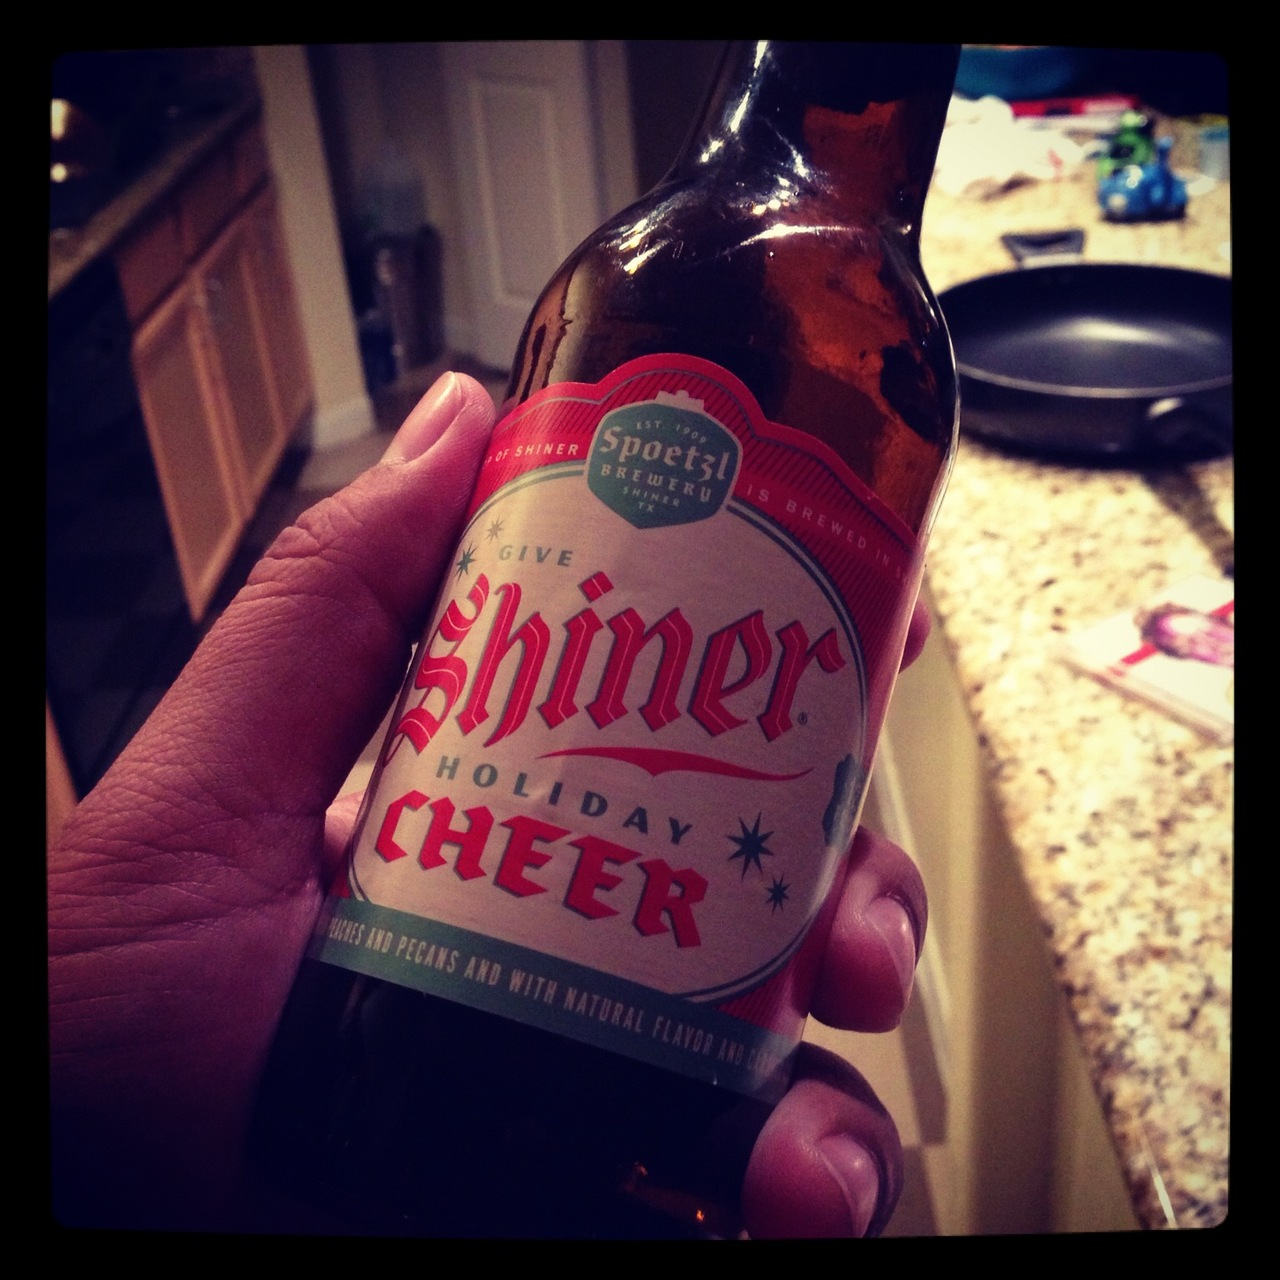 I don't really have any Thanksgiving eve traditions…  but I may start going out of my way to drown 12 Shiner CHEER Beers from here on out.   It's a sham this beer isn't available all year round.